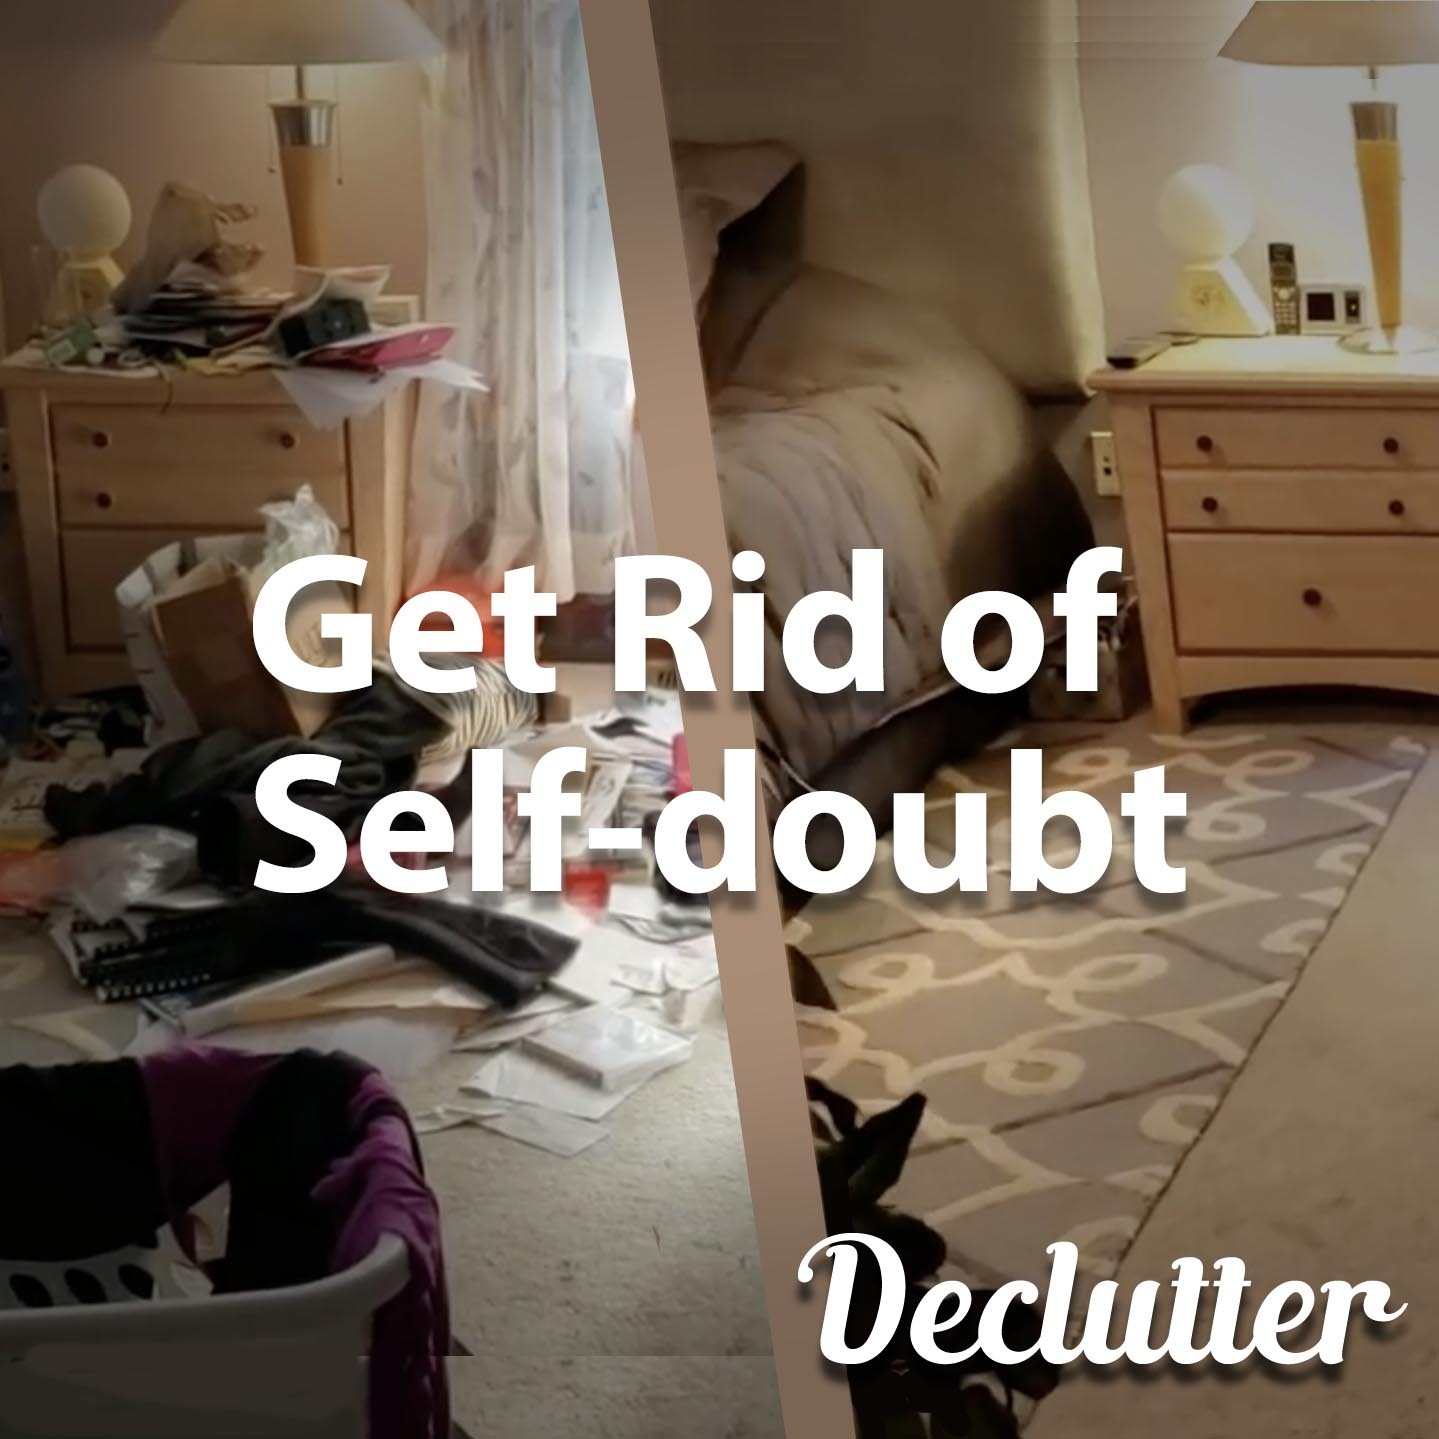 Declutter | Get Rid of Self-doubt